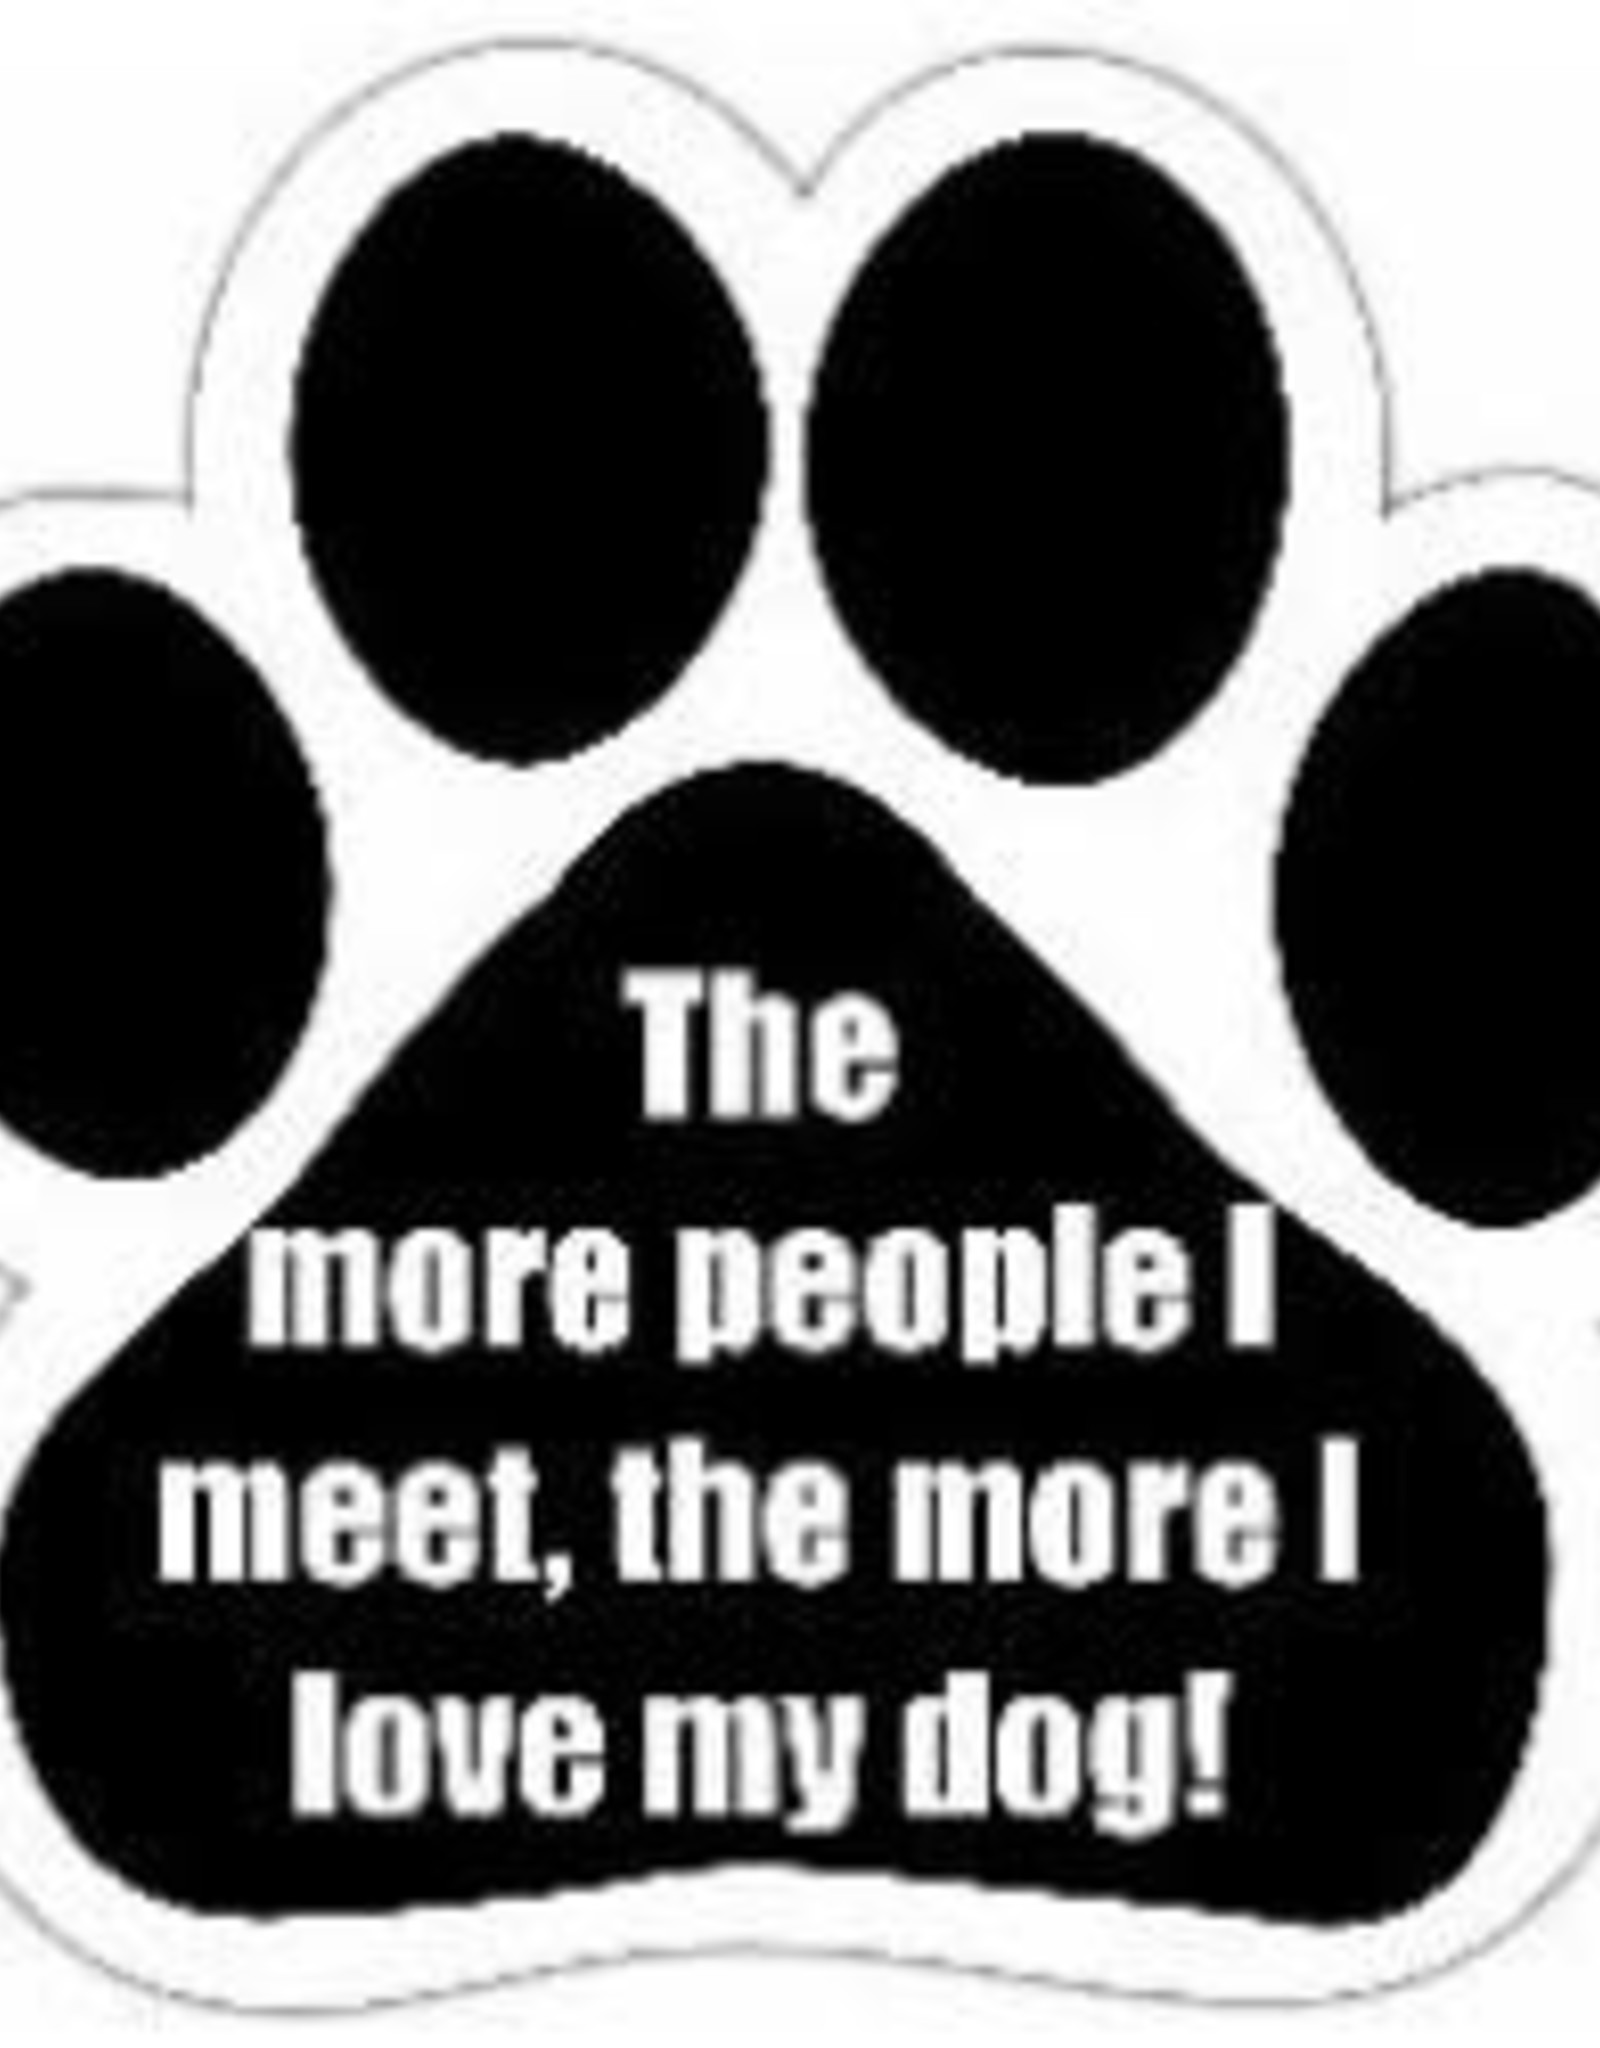 Car Magnet: The More People I Meet, The More I Love My Dog